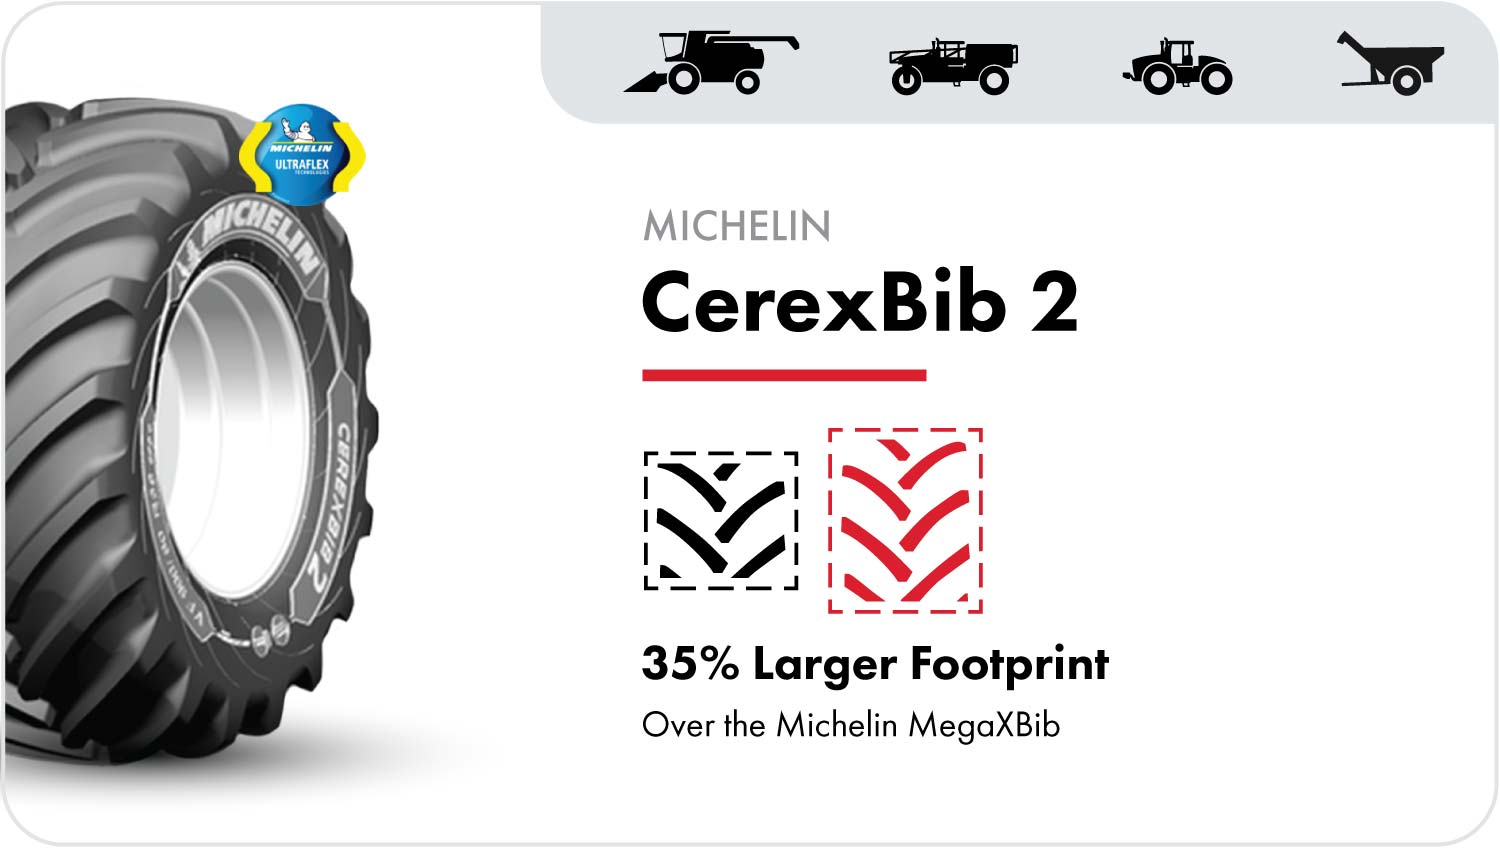 The VF Michelin CerexBib 2 with the CFO+ designation is the next generation combine tire that delivers an even larger footprint than the CereXBib and MegaXBib tires.